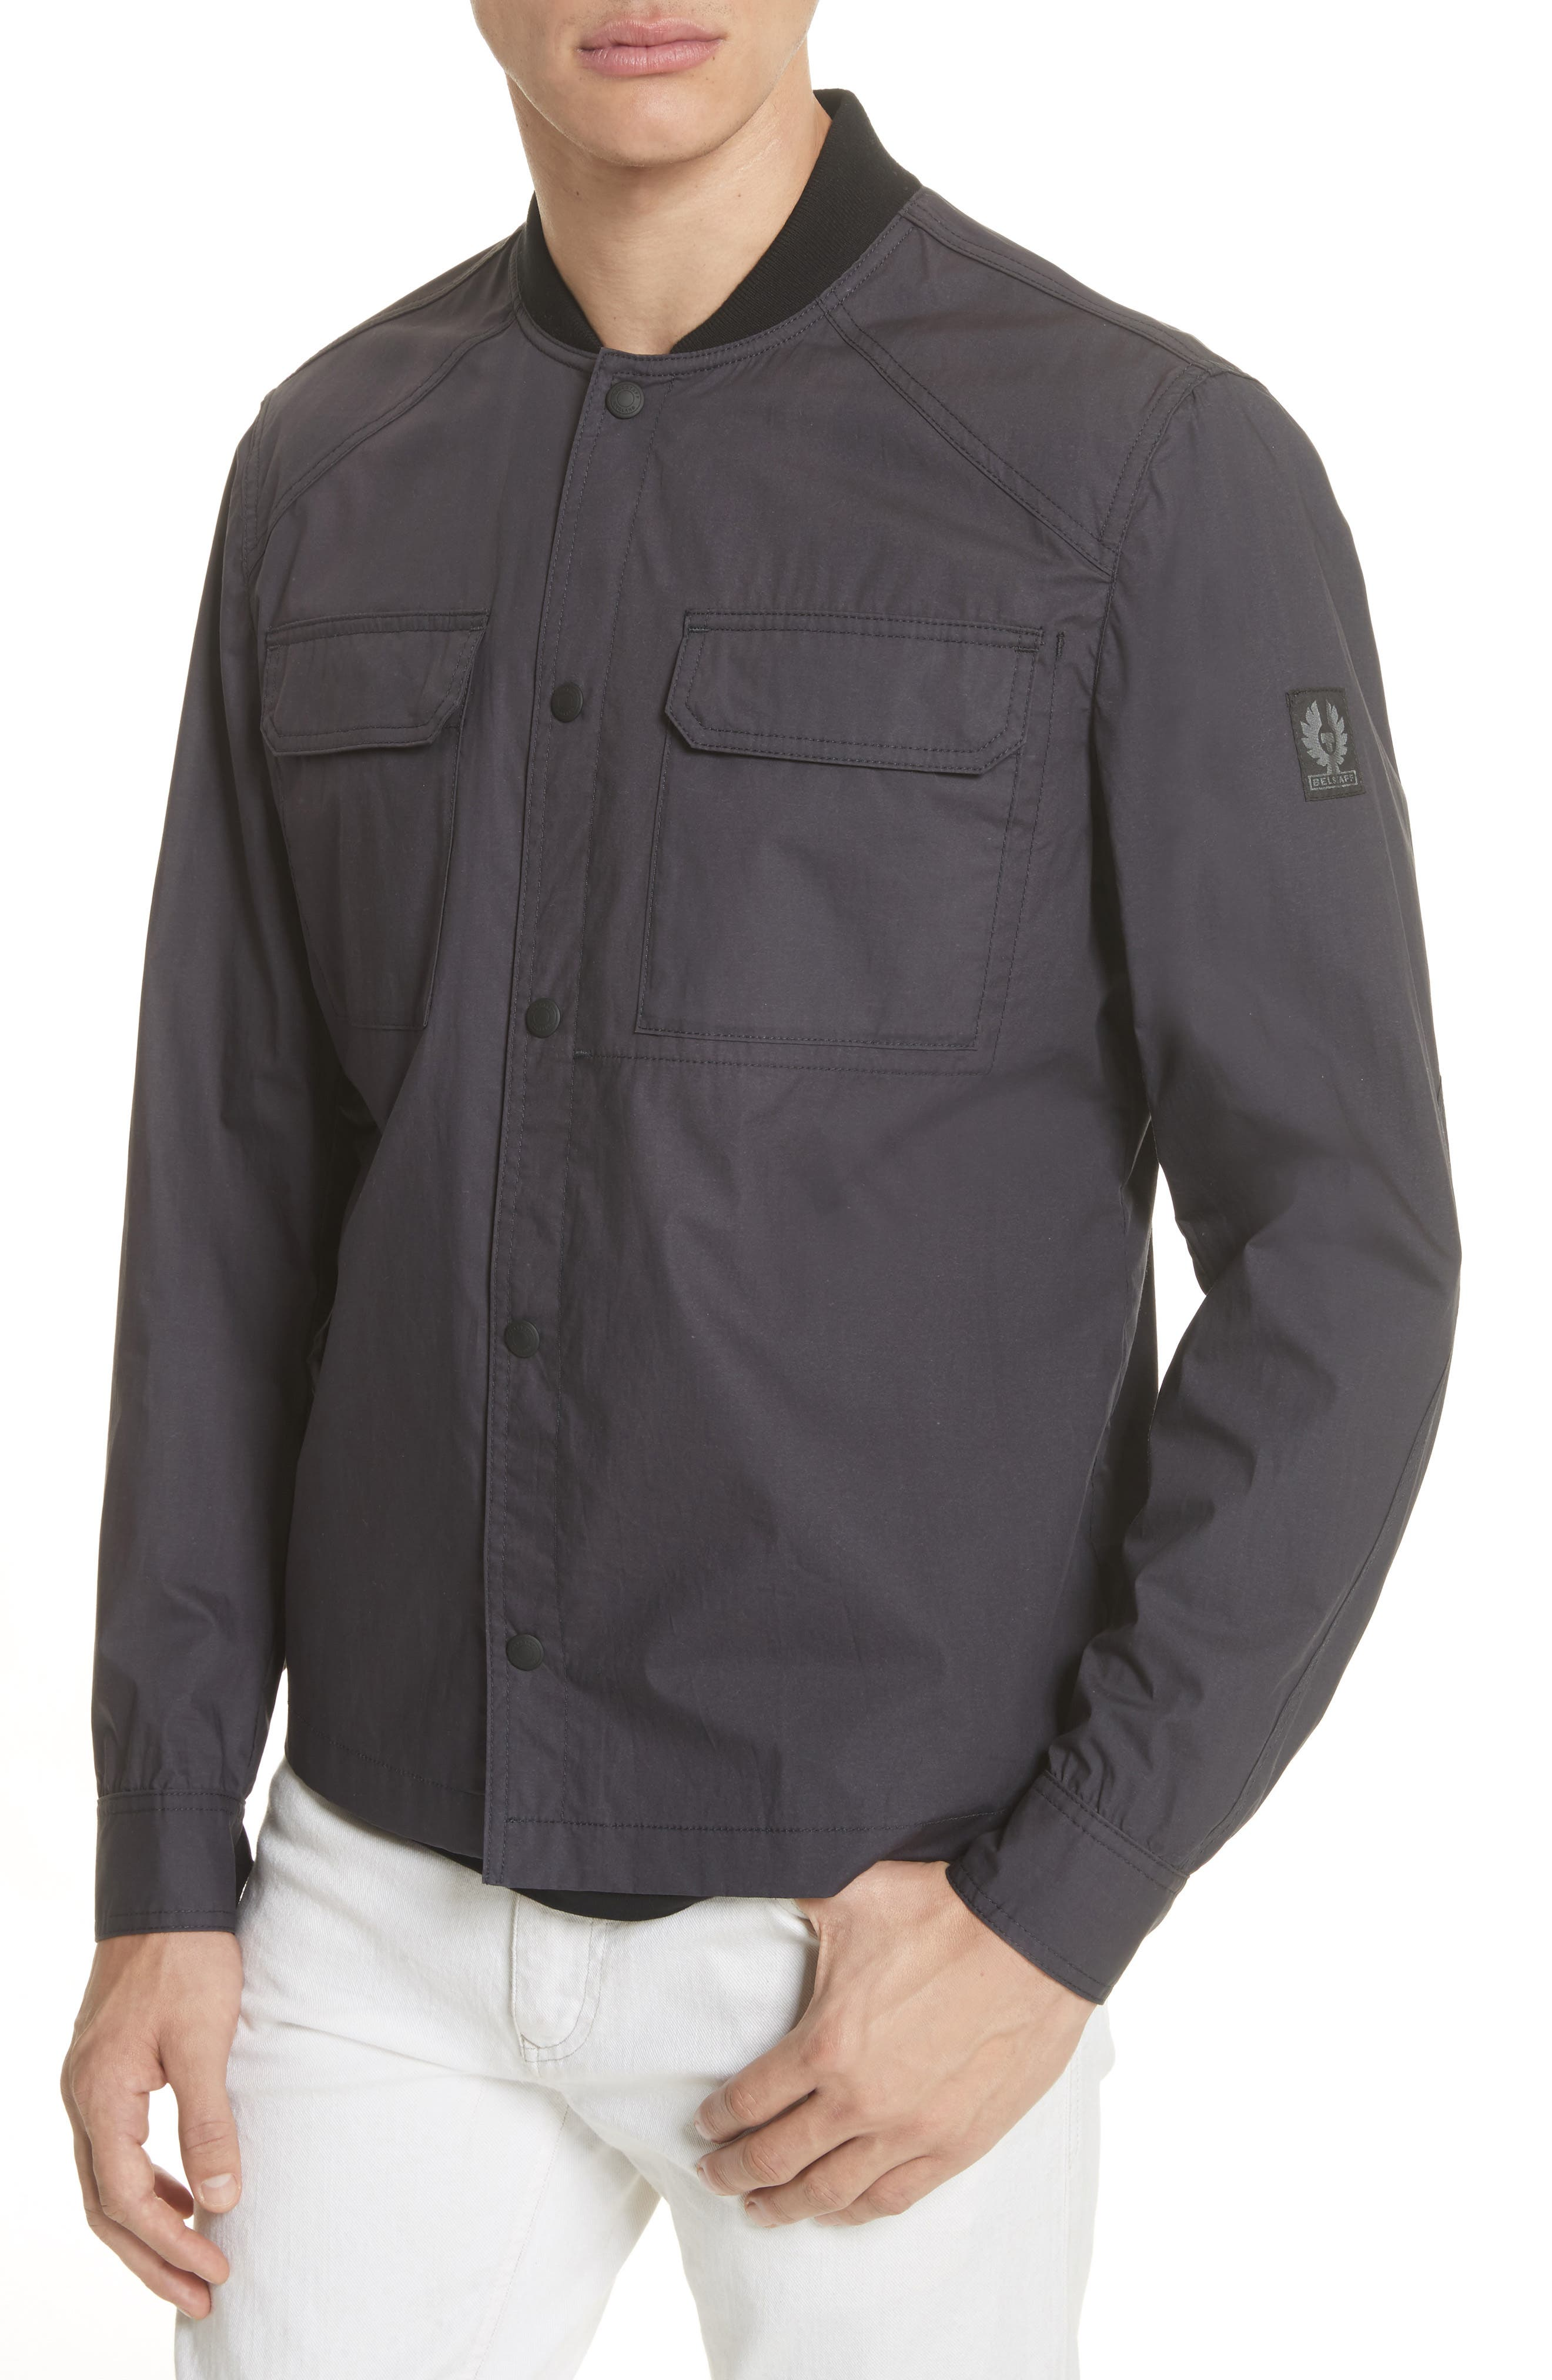 Cardingham Jacket,                             Alternate thumbnail 4, color,                             Charcoal